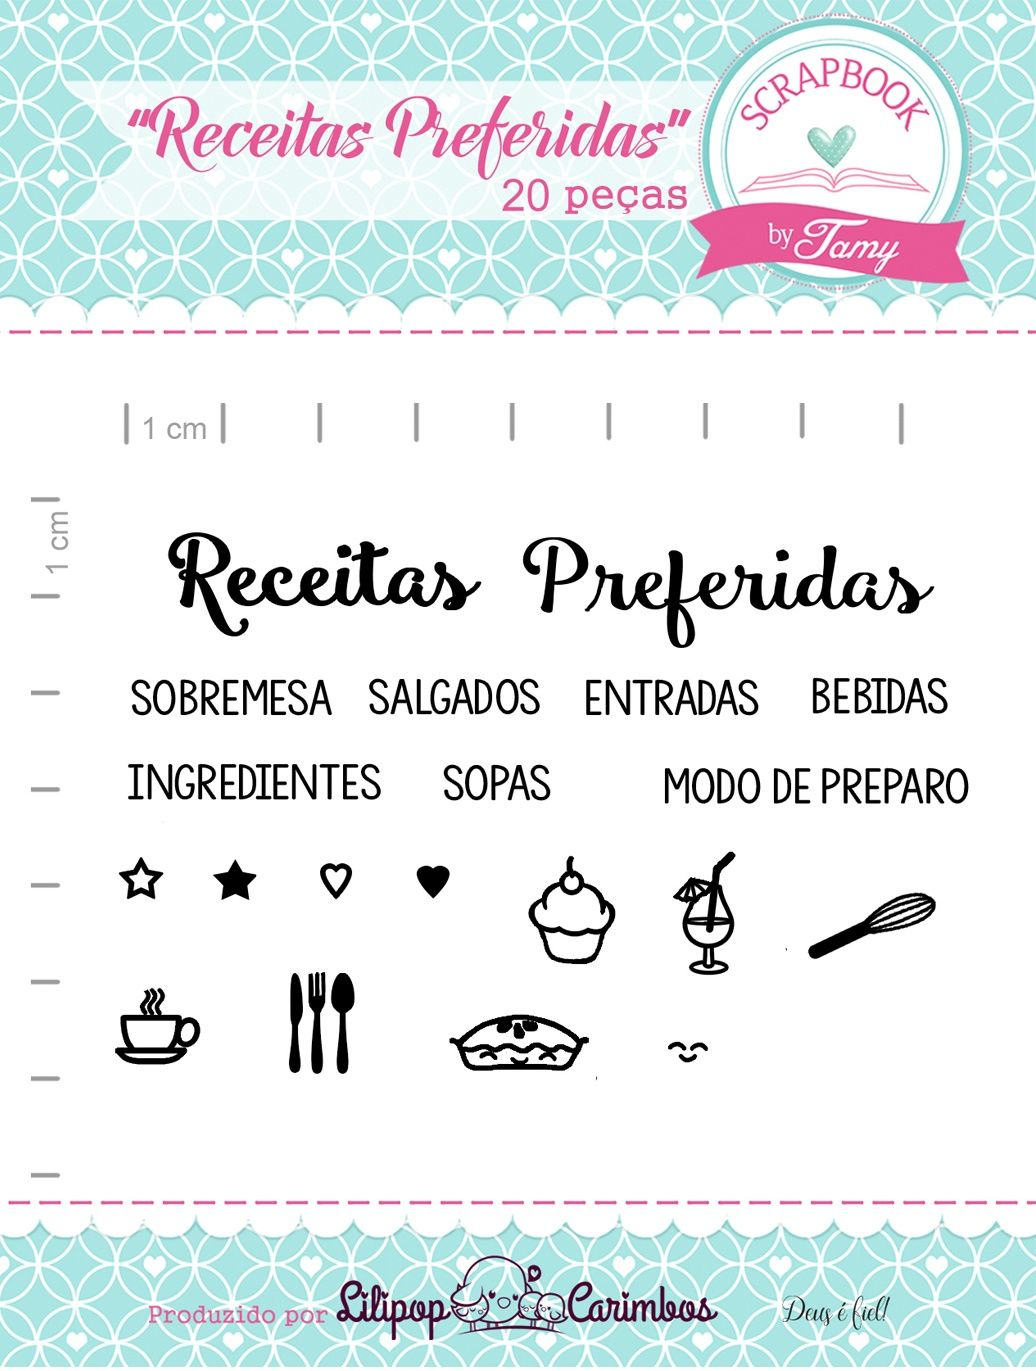 Kit de Carimbos - Receitas Preferidas - Scrapbook by Tamy